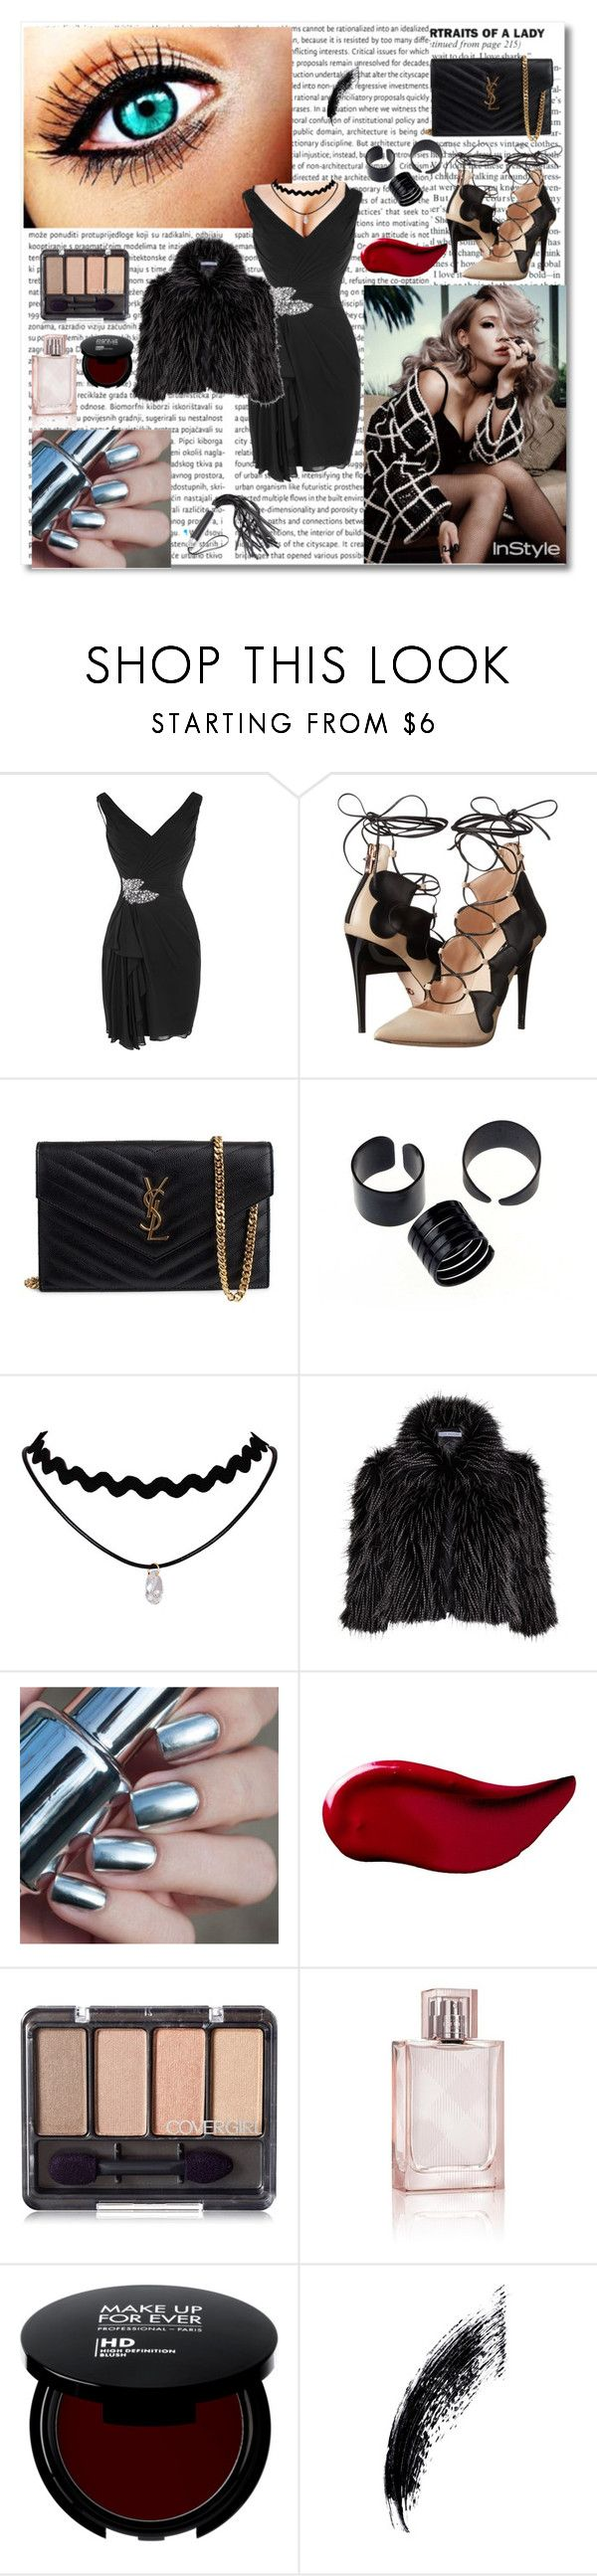 """TOO HOT FOR YOU BABY <3"" by stayhappy16 ❤ liked on Polyvore featuring Ruthie Davis, Yves Saint Laurent, Gina Bacconi, Kat Von D and Burberry"